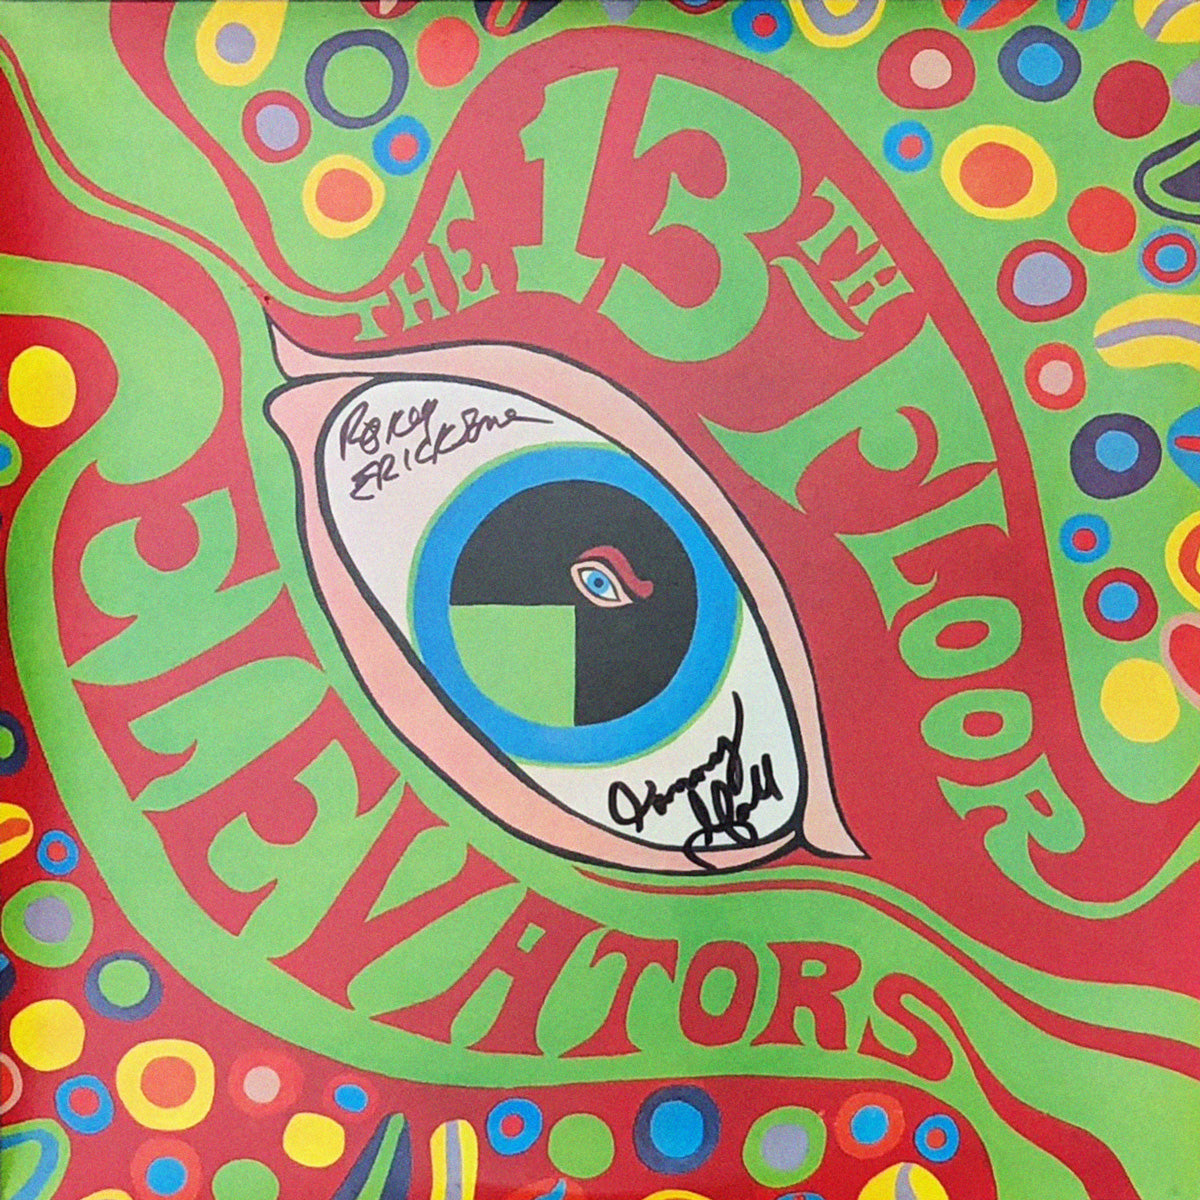 SIGNED - 13th Floor Elevators - Psychedelic Sounds 2xLP – Levitation